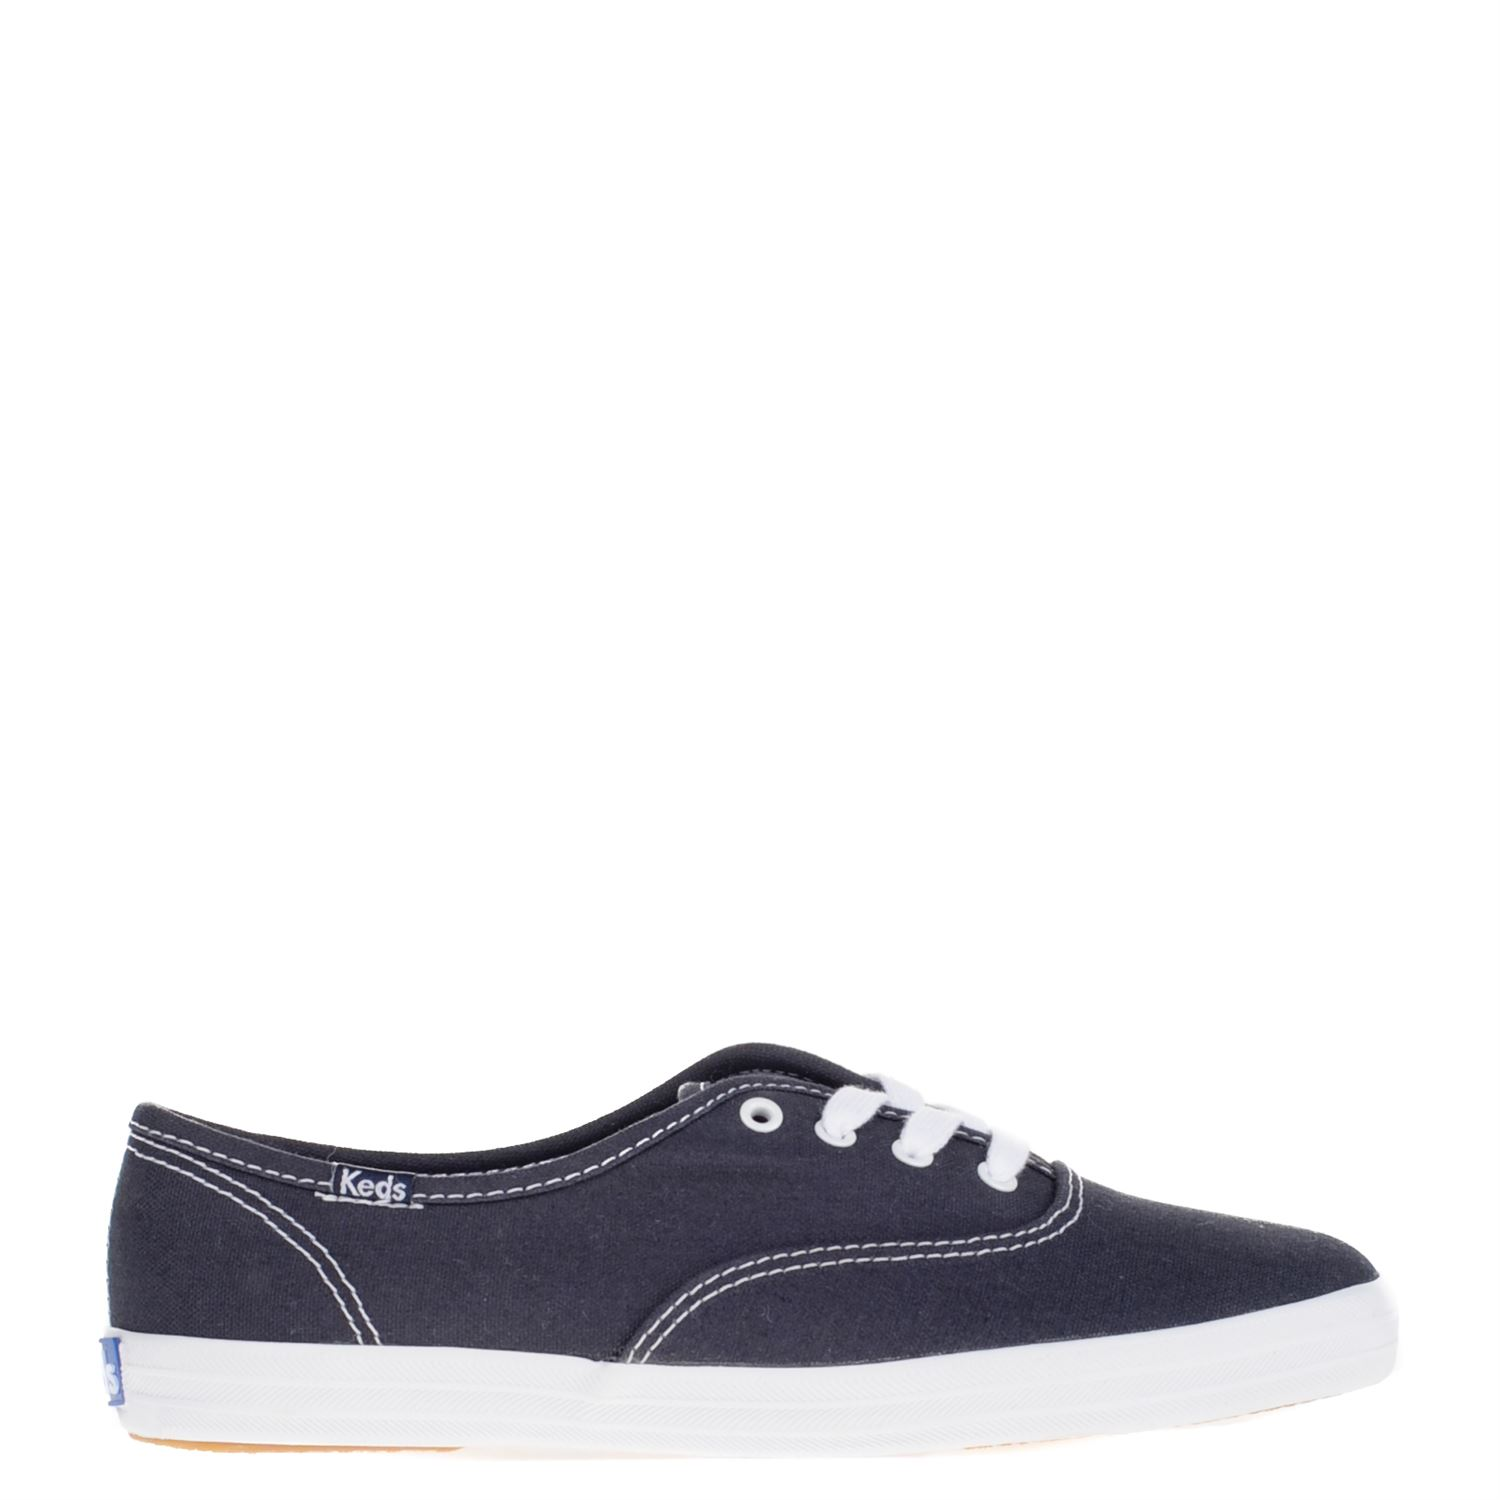 Lage Sneakers Blauw Dames Lage Keds Keds Dames Blauw Sneakers 0Yqwp0